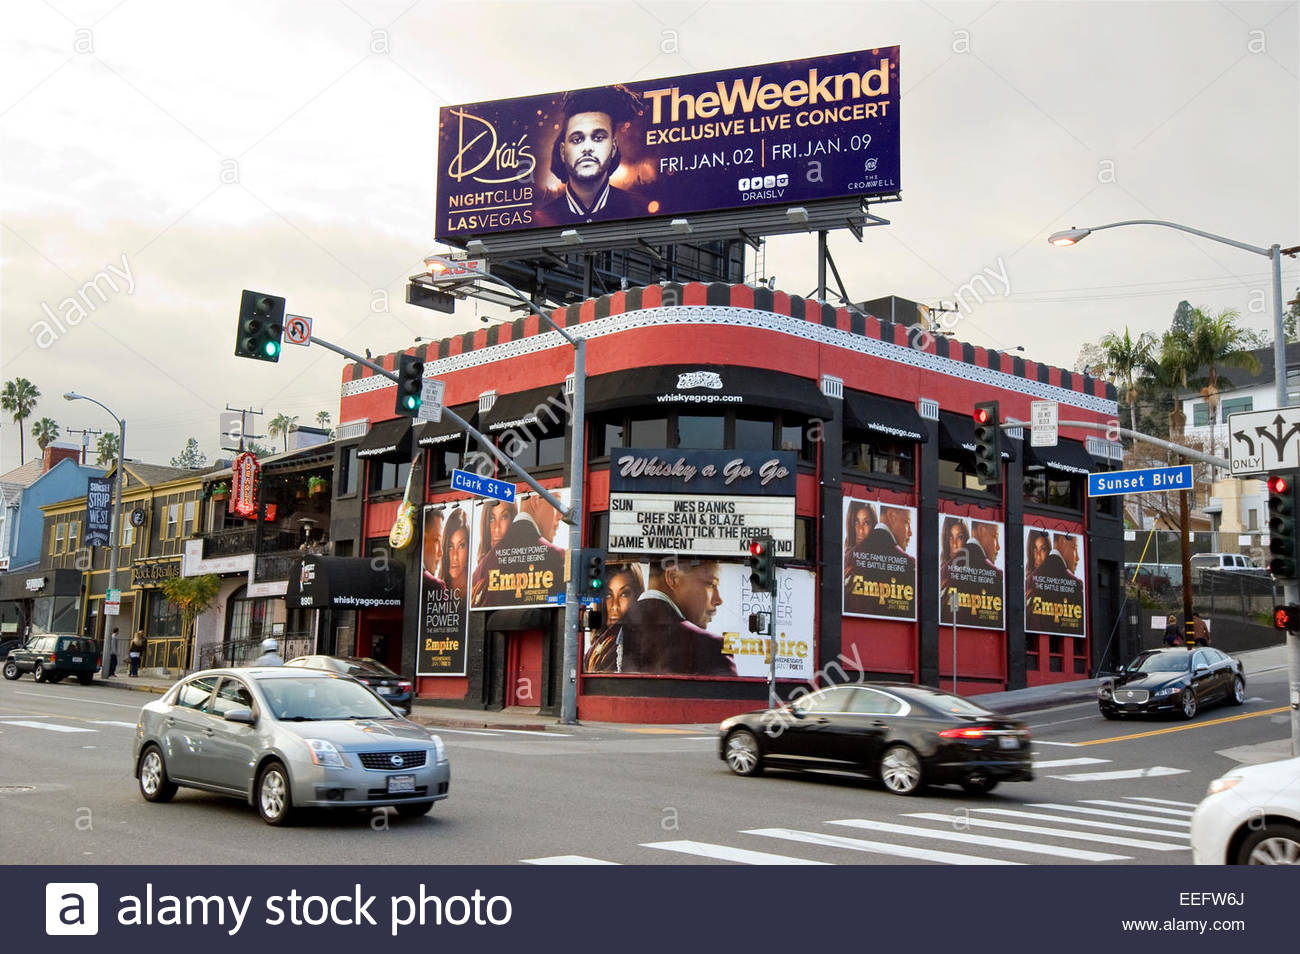 Whisky A Go Go High Resolution Stock Photography And Images Inside Whiskey A Go Go Schedule